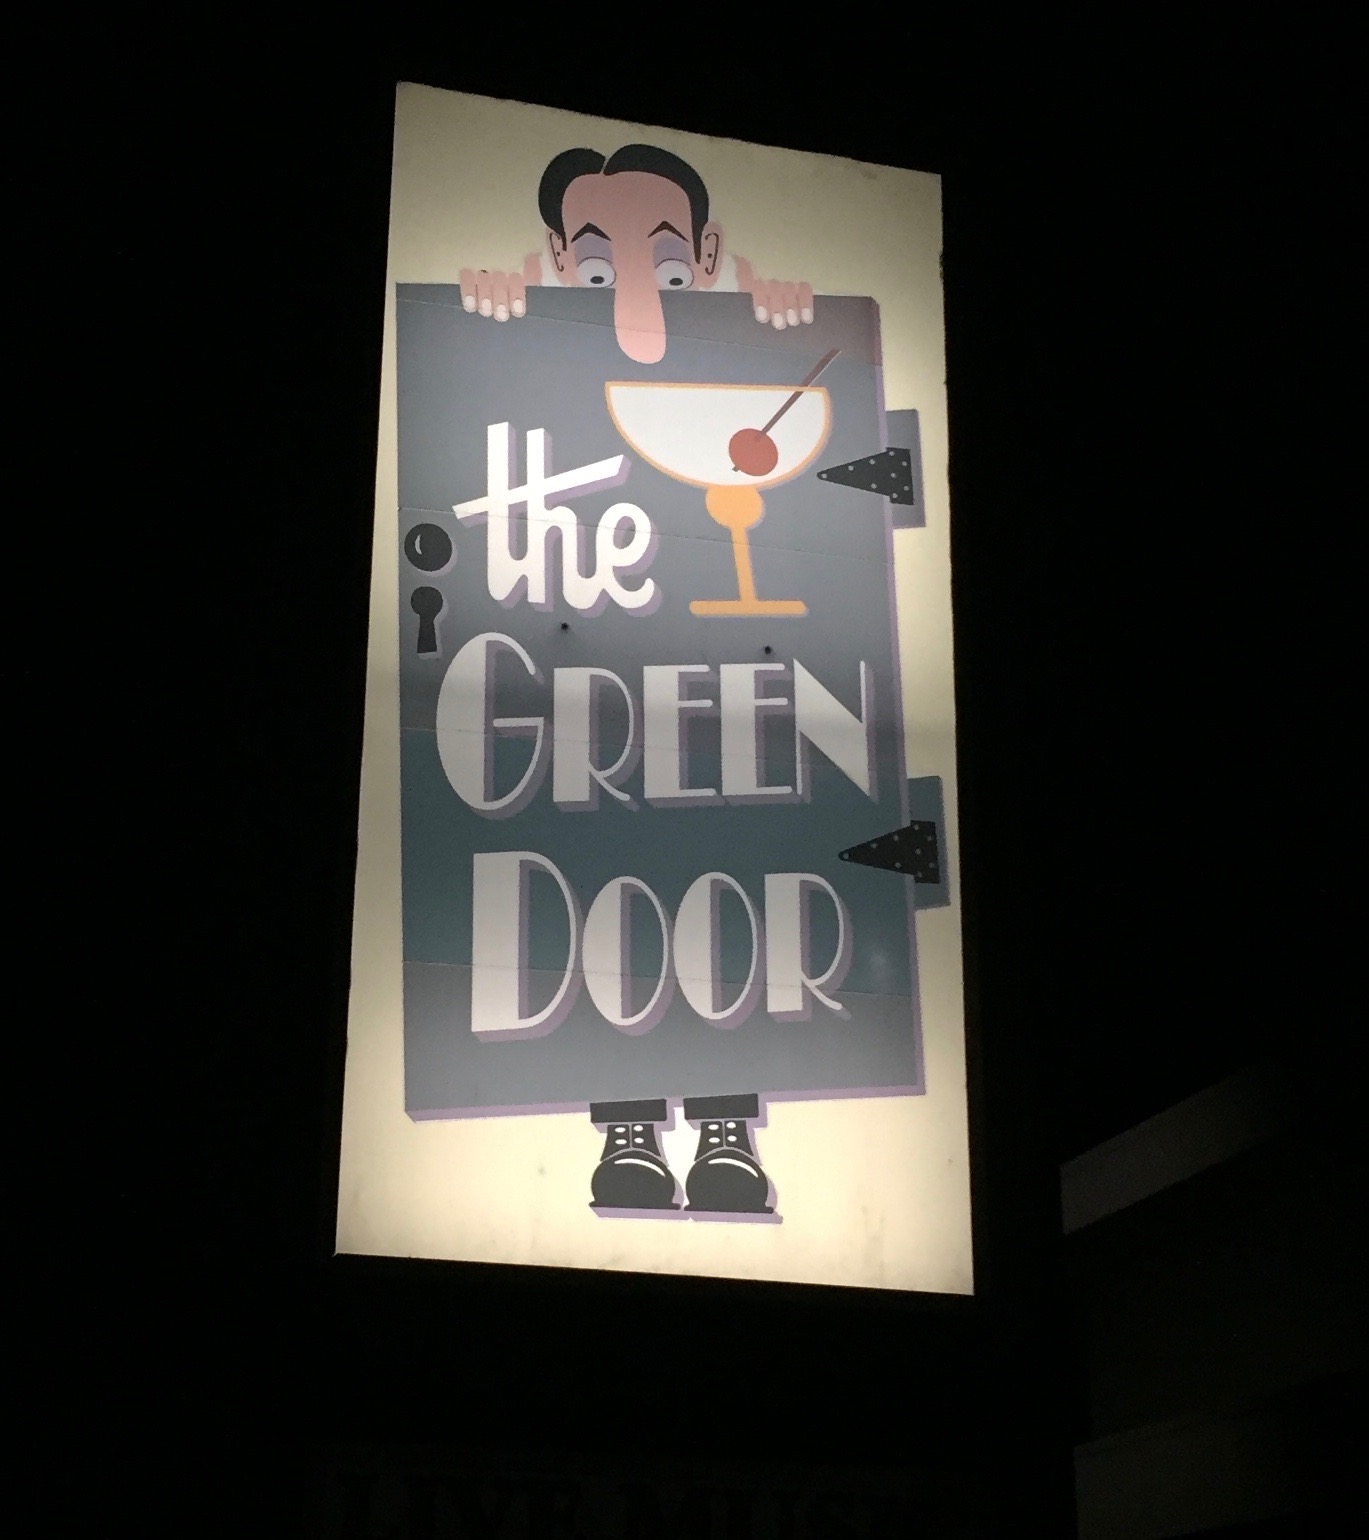 The legendary Green Door, Napa